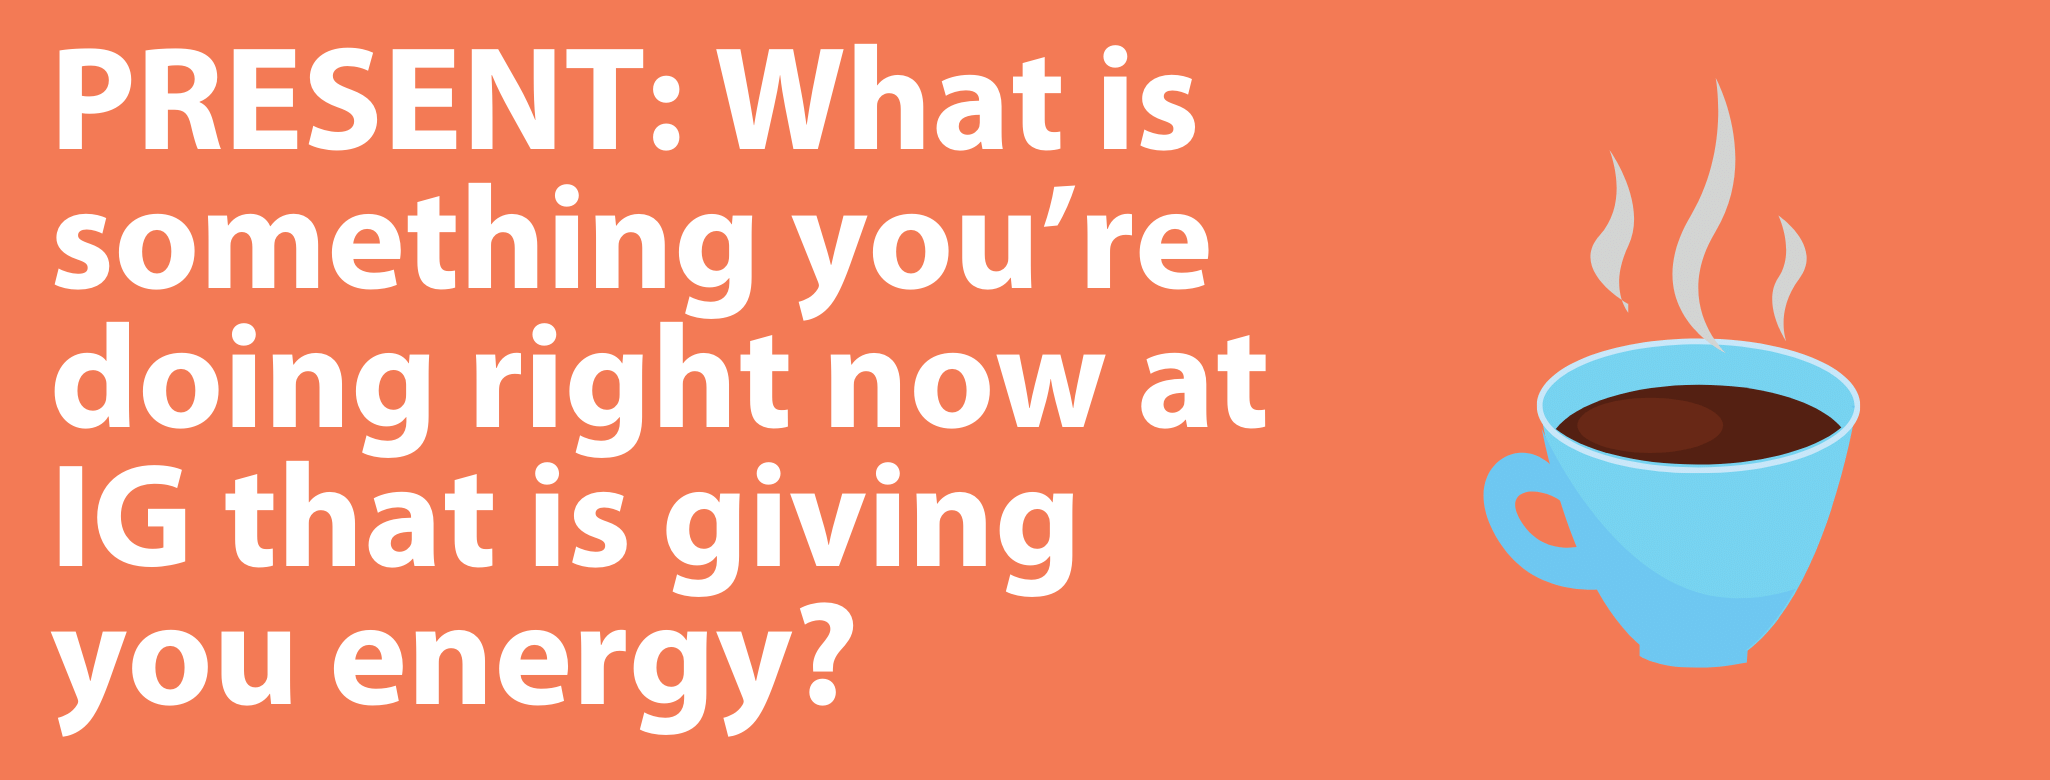 "A graphic of white text on an orange background that says ""PRESENT: What is something you're doing right now at IG that is giving you energy?"" and features an image of a cup of coffee"